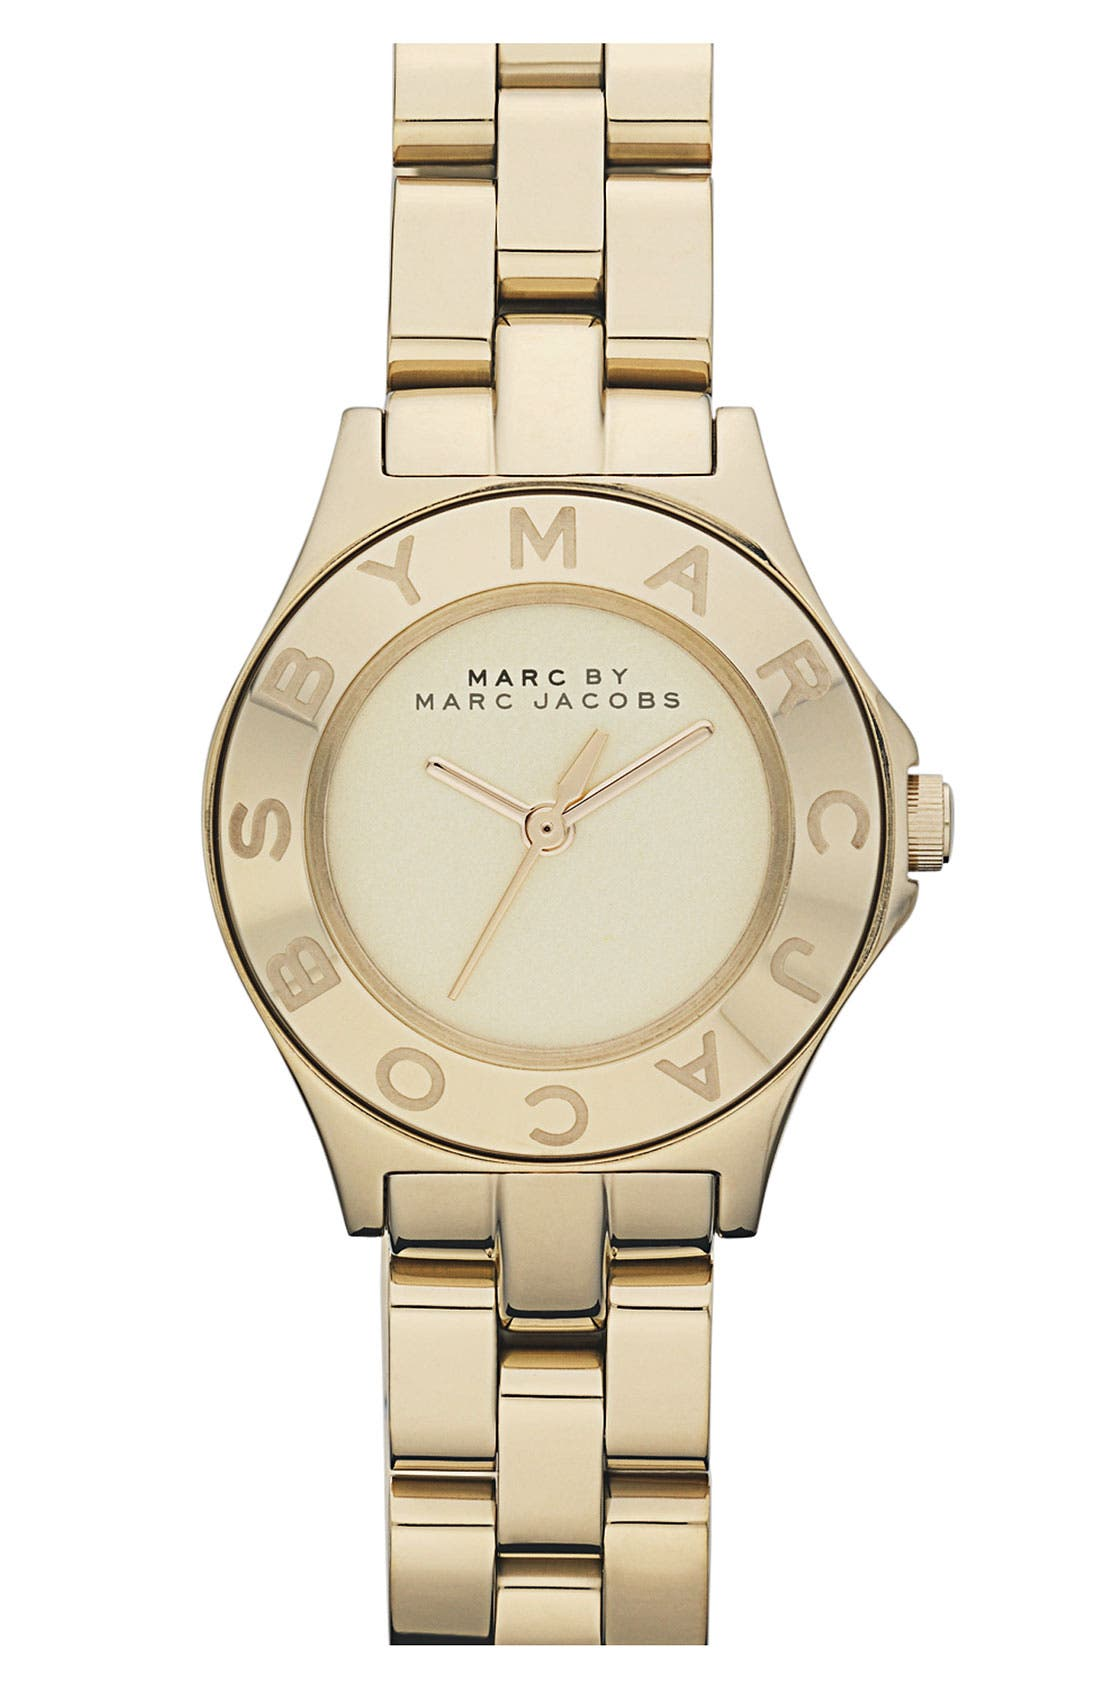 Main Image - MARC BY MARC JACOBS 'Small Blade' Round Bracelet Watch